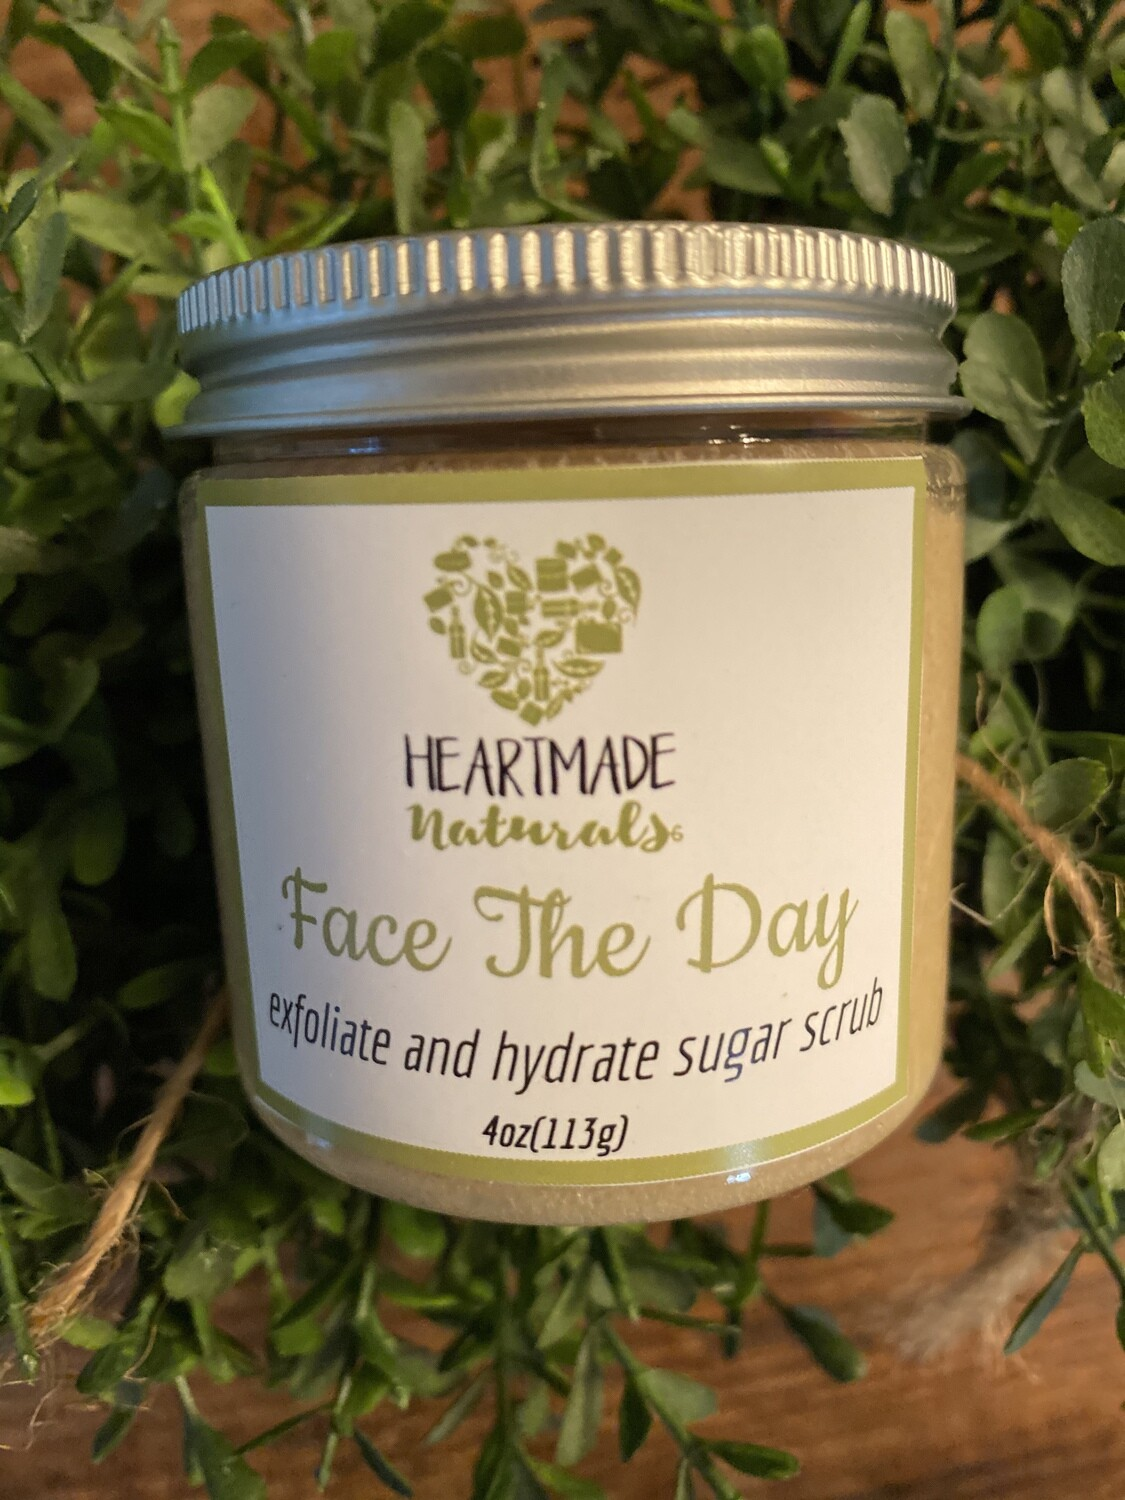 Face the day. Exfoliate